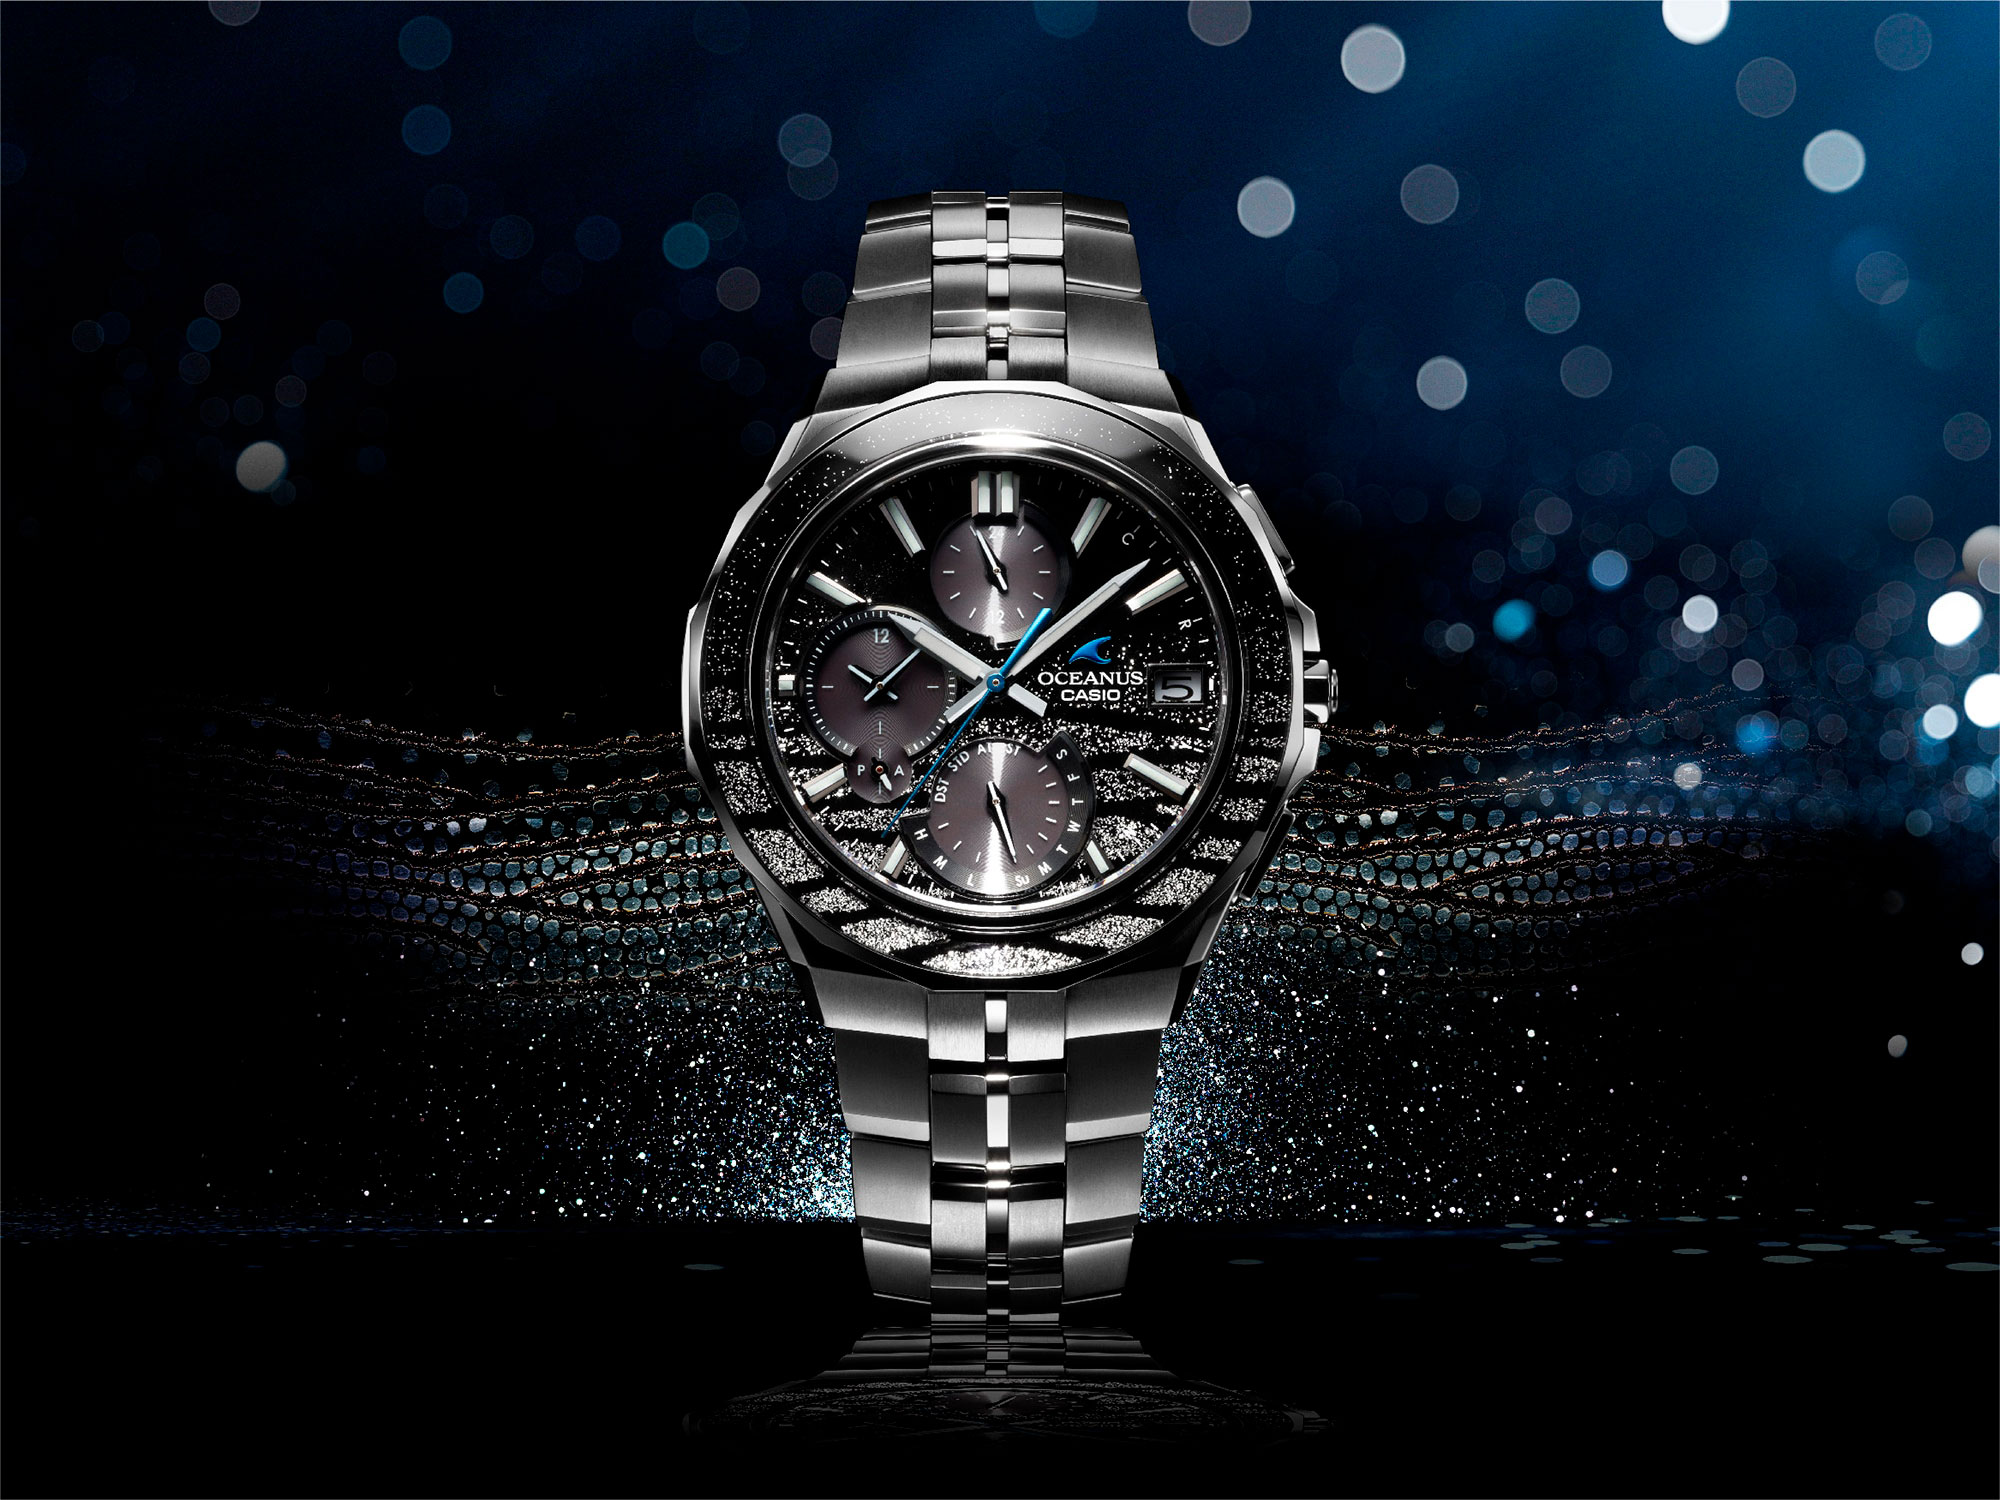 Oceanus OCW-S5000ME — high-quality finish and a beautiful form